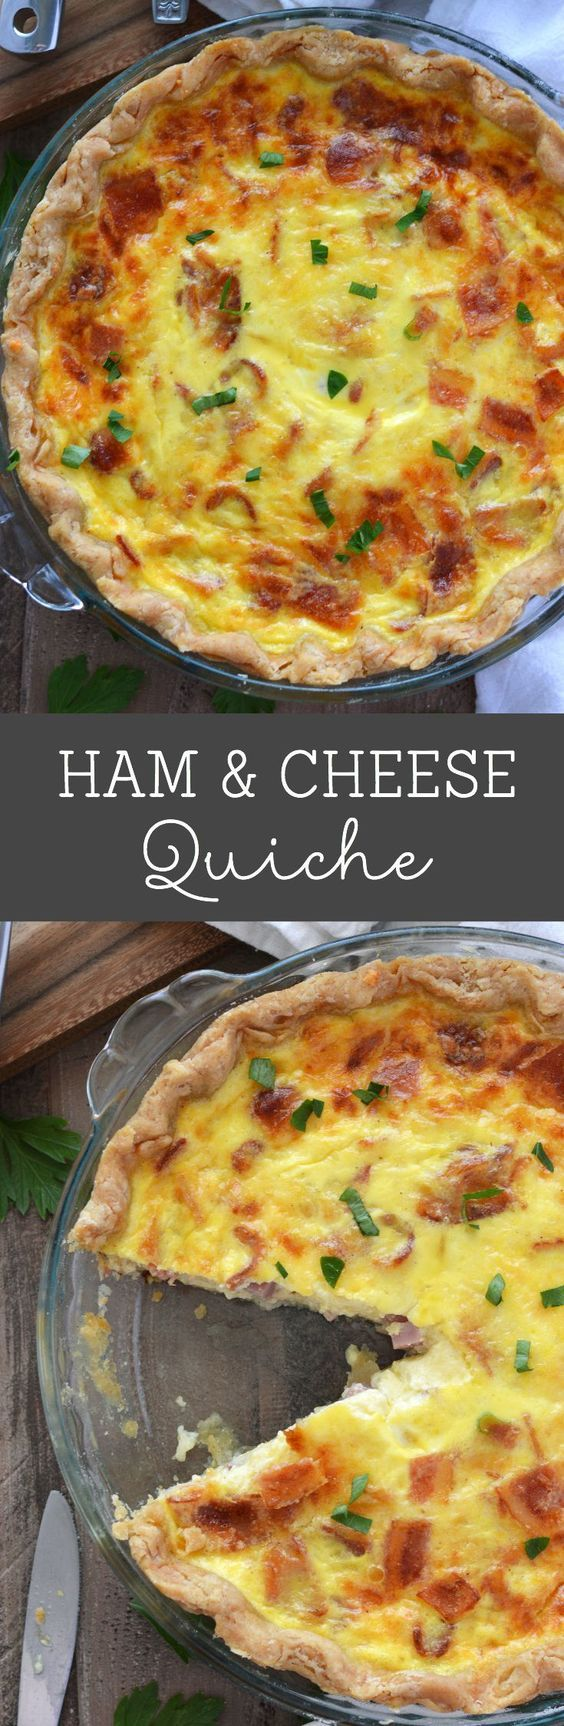 Ham and Cheese Quiche from What The Fork Food Blog | @WhatTheForkBlog | whattheforkfoodblog.com